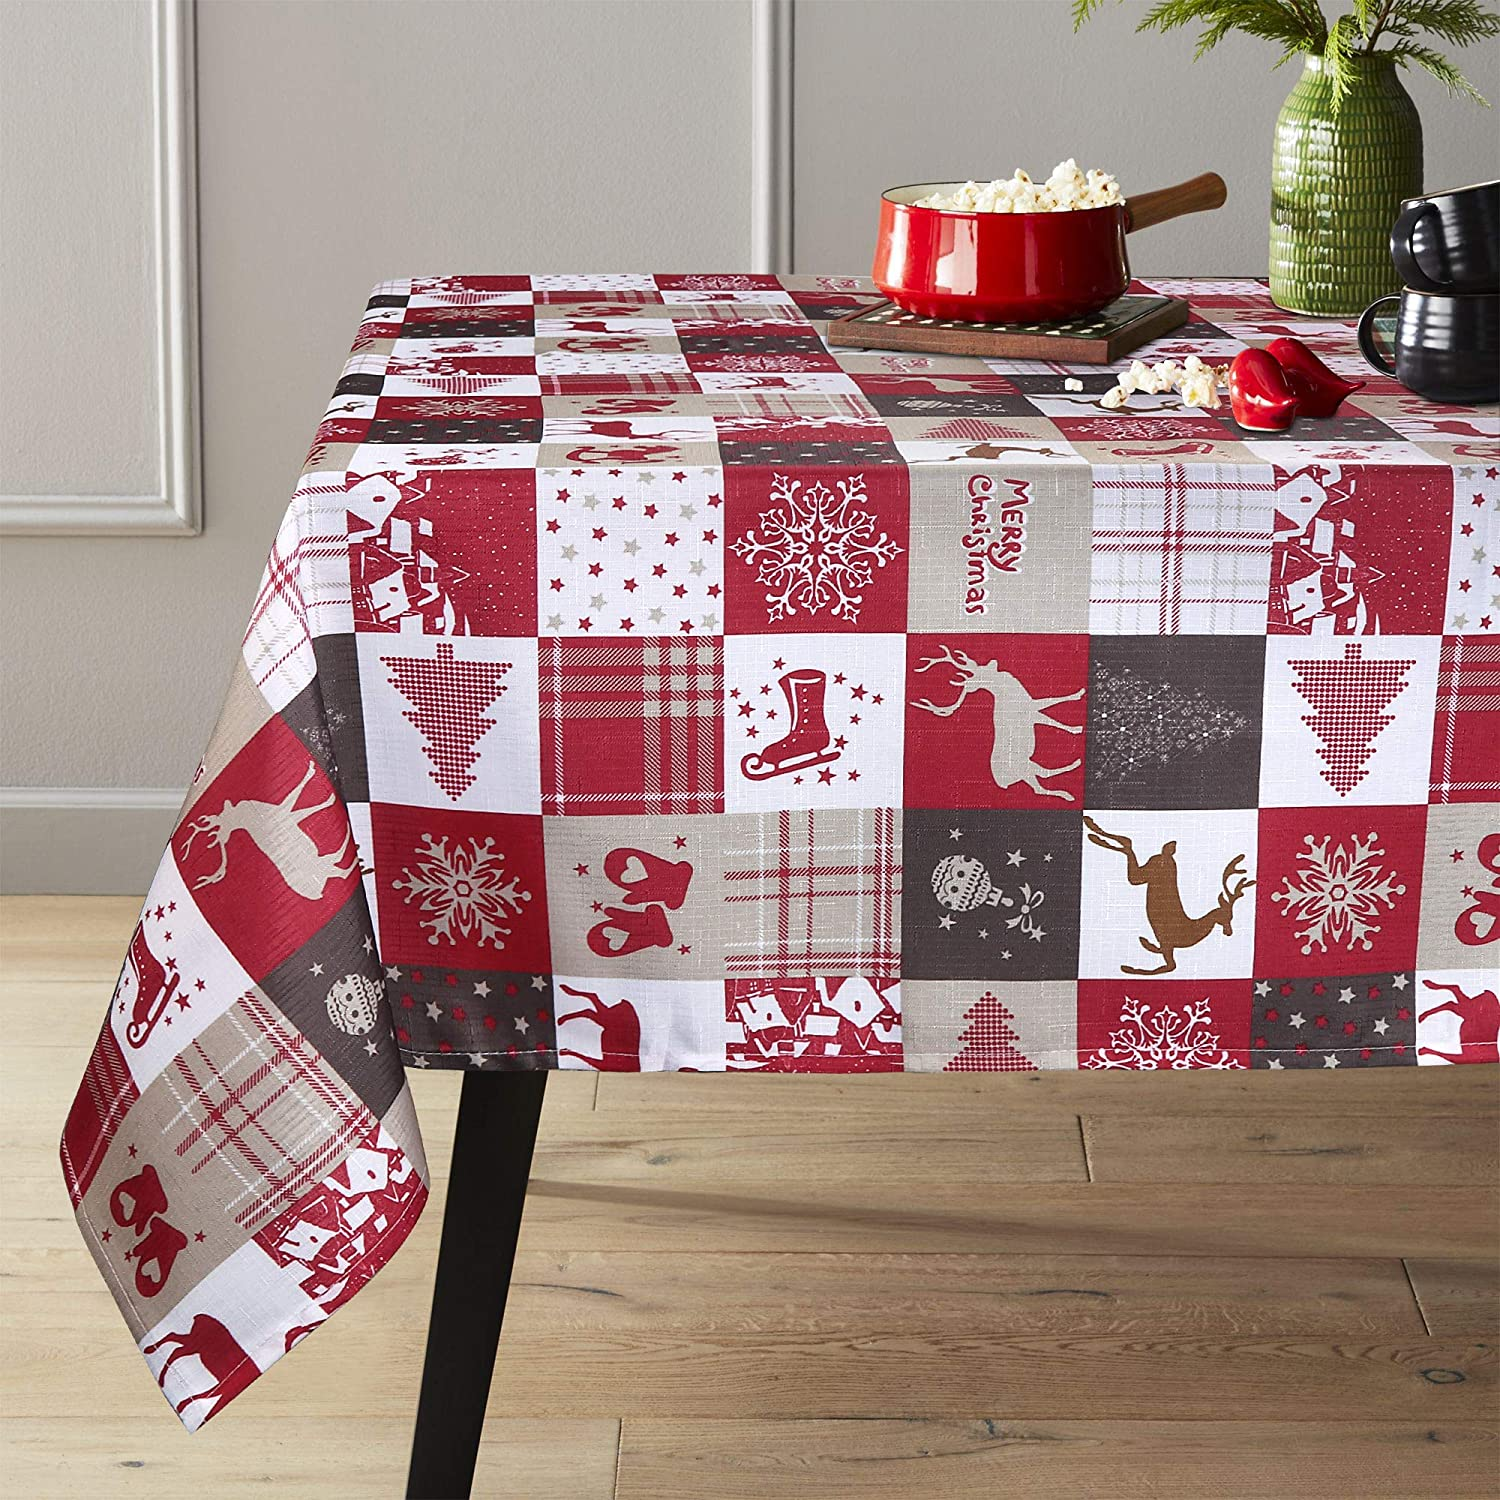 """Lahome Christmas Tree Deer Tablecloth - Holiday Cartoon Elk Snowflake Engineered Printed Table Cover for Christmas Kitchen Dining Room Party Decor (Christmas Tree Deer, Rectangle - 60"""" x 120"""")"""